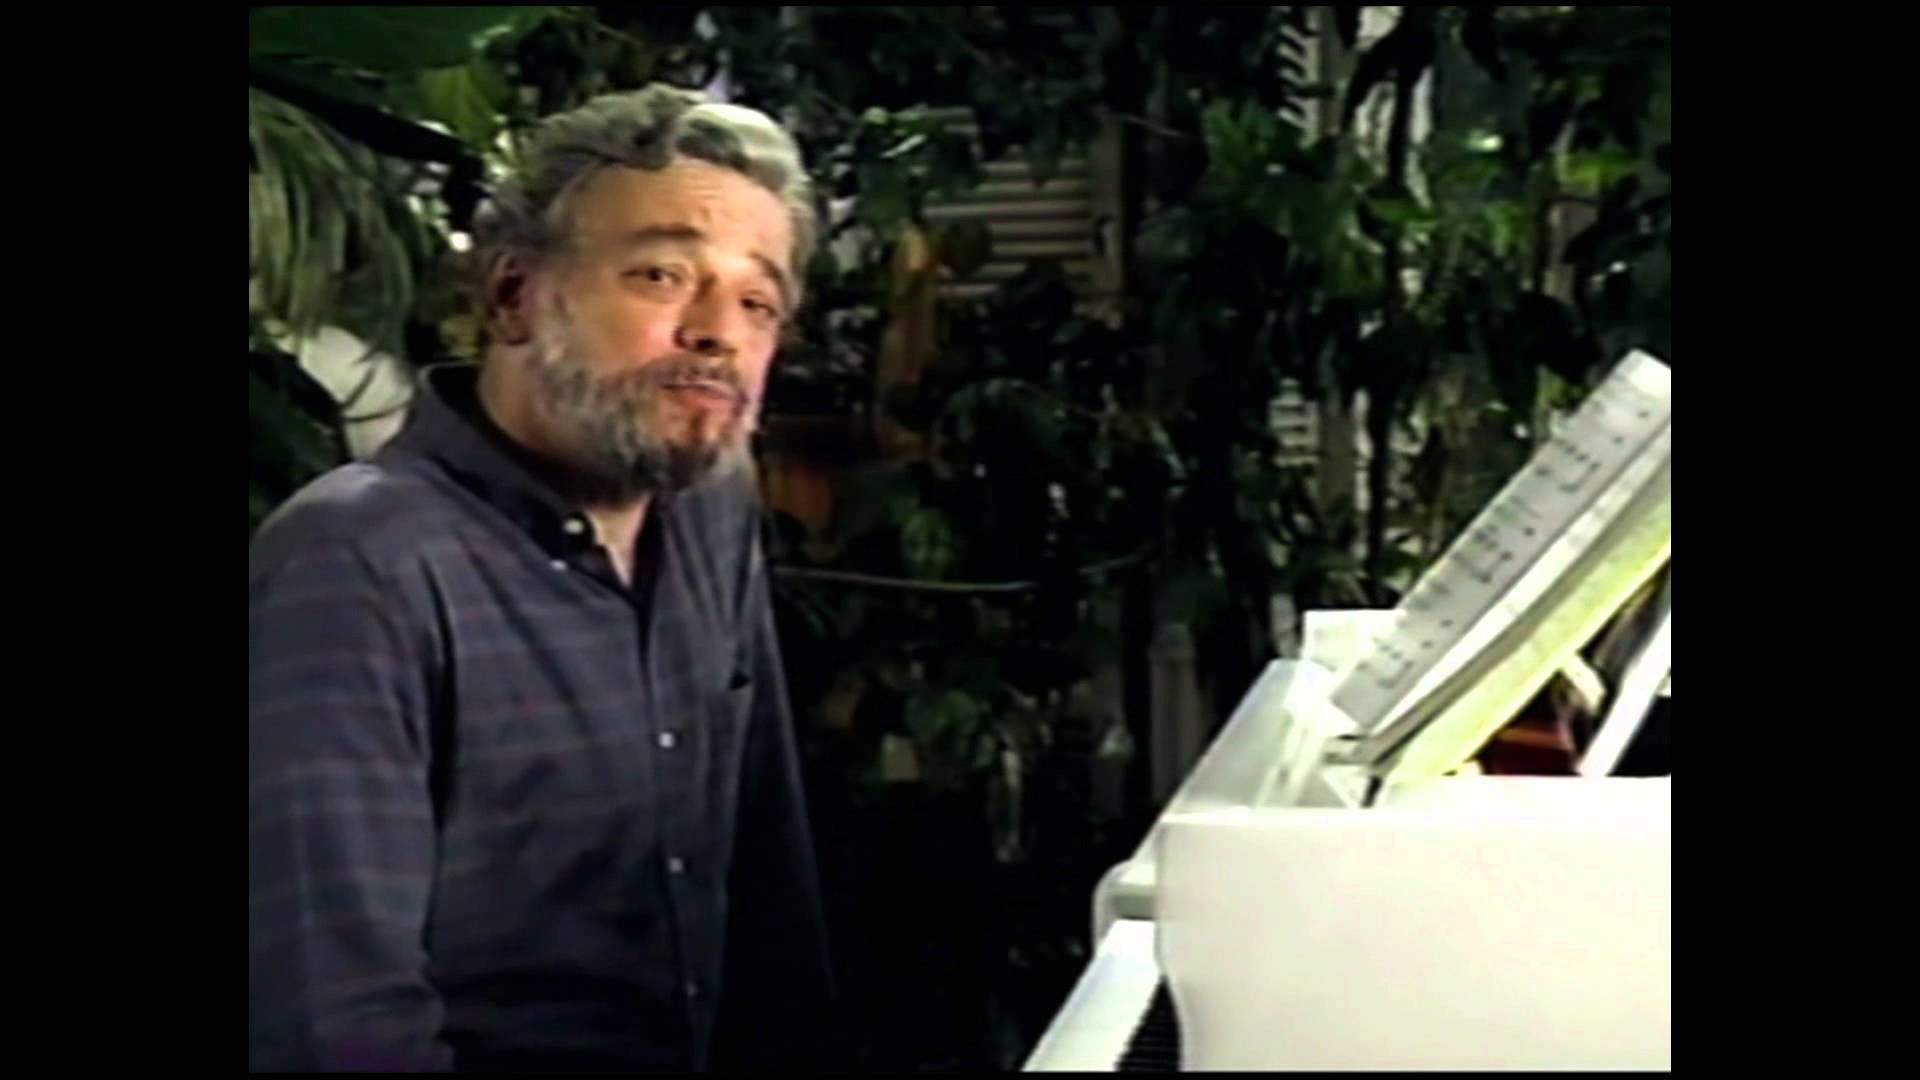 Composer Stephen Sondheim discusses the legendary role of the Witch in Into the Woods